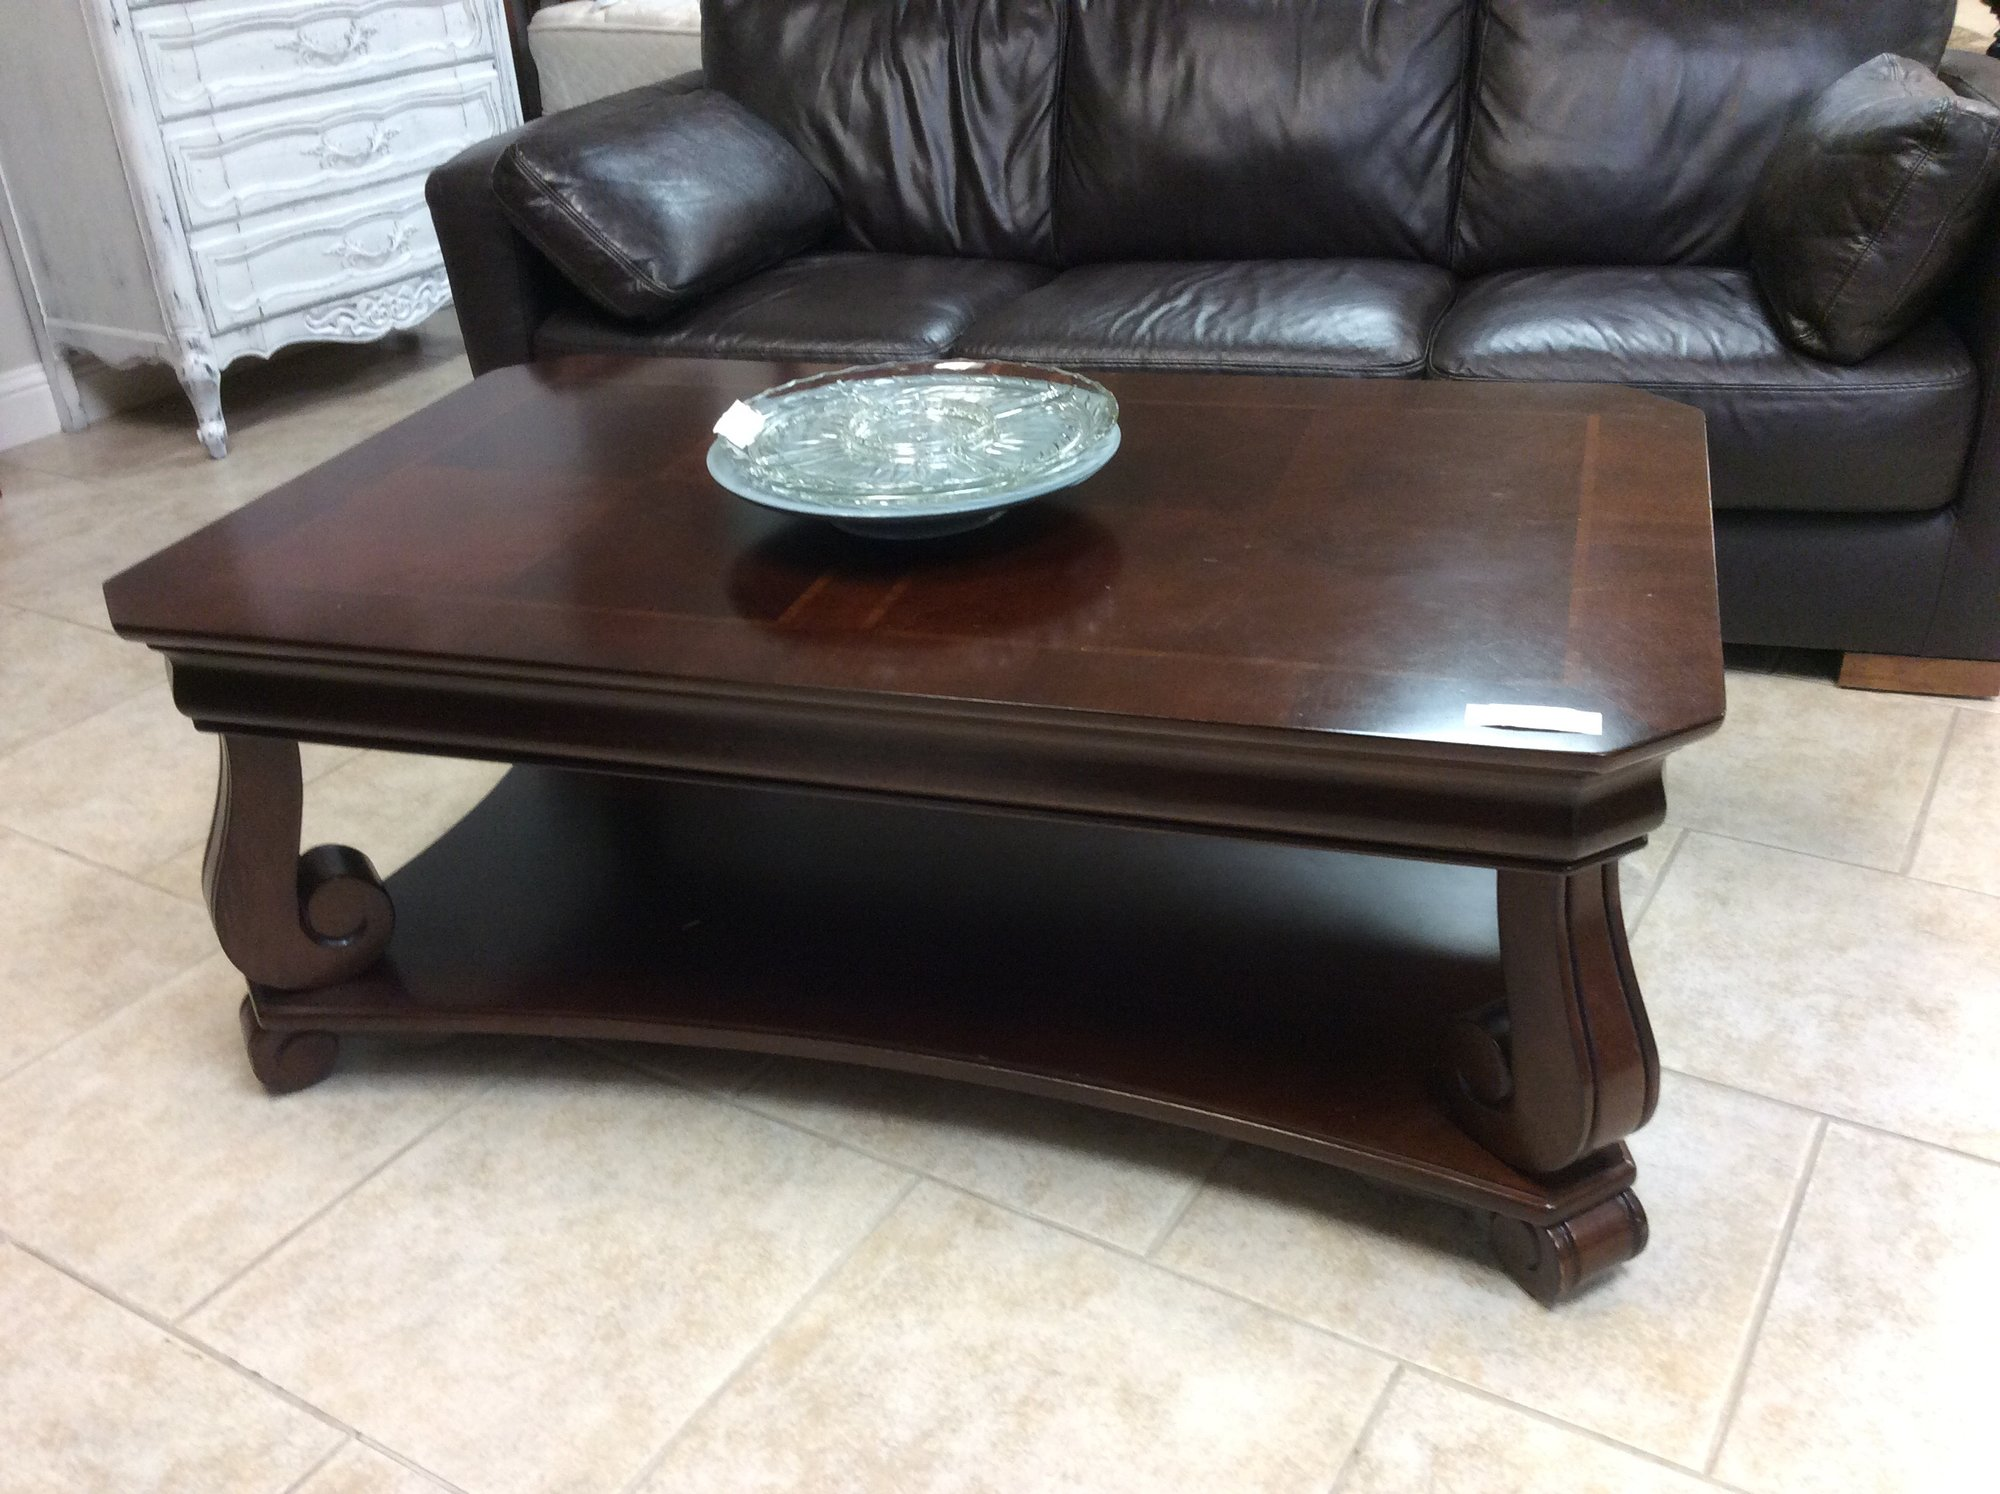 This handsome coffee table appears to be solid wood. It has a mahogany finish, as well as pretty inlaid wood designs on the top.